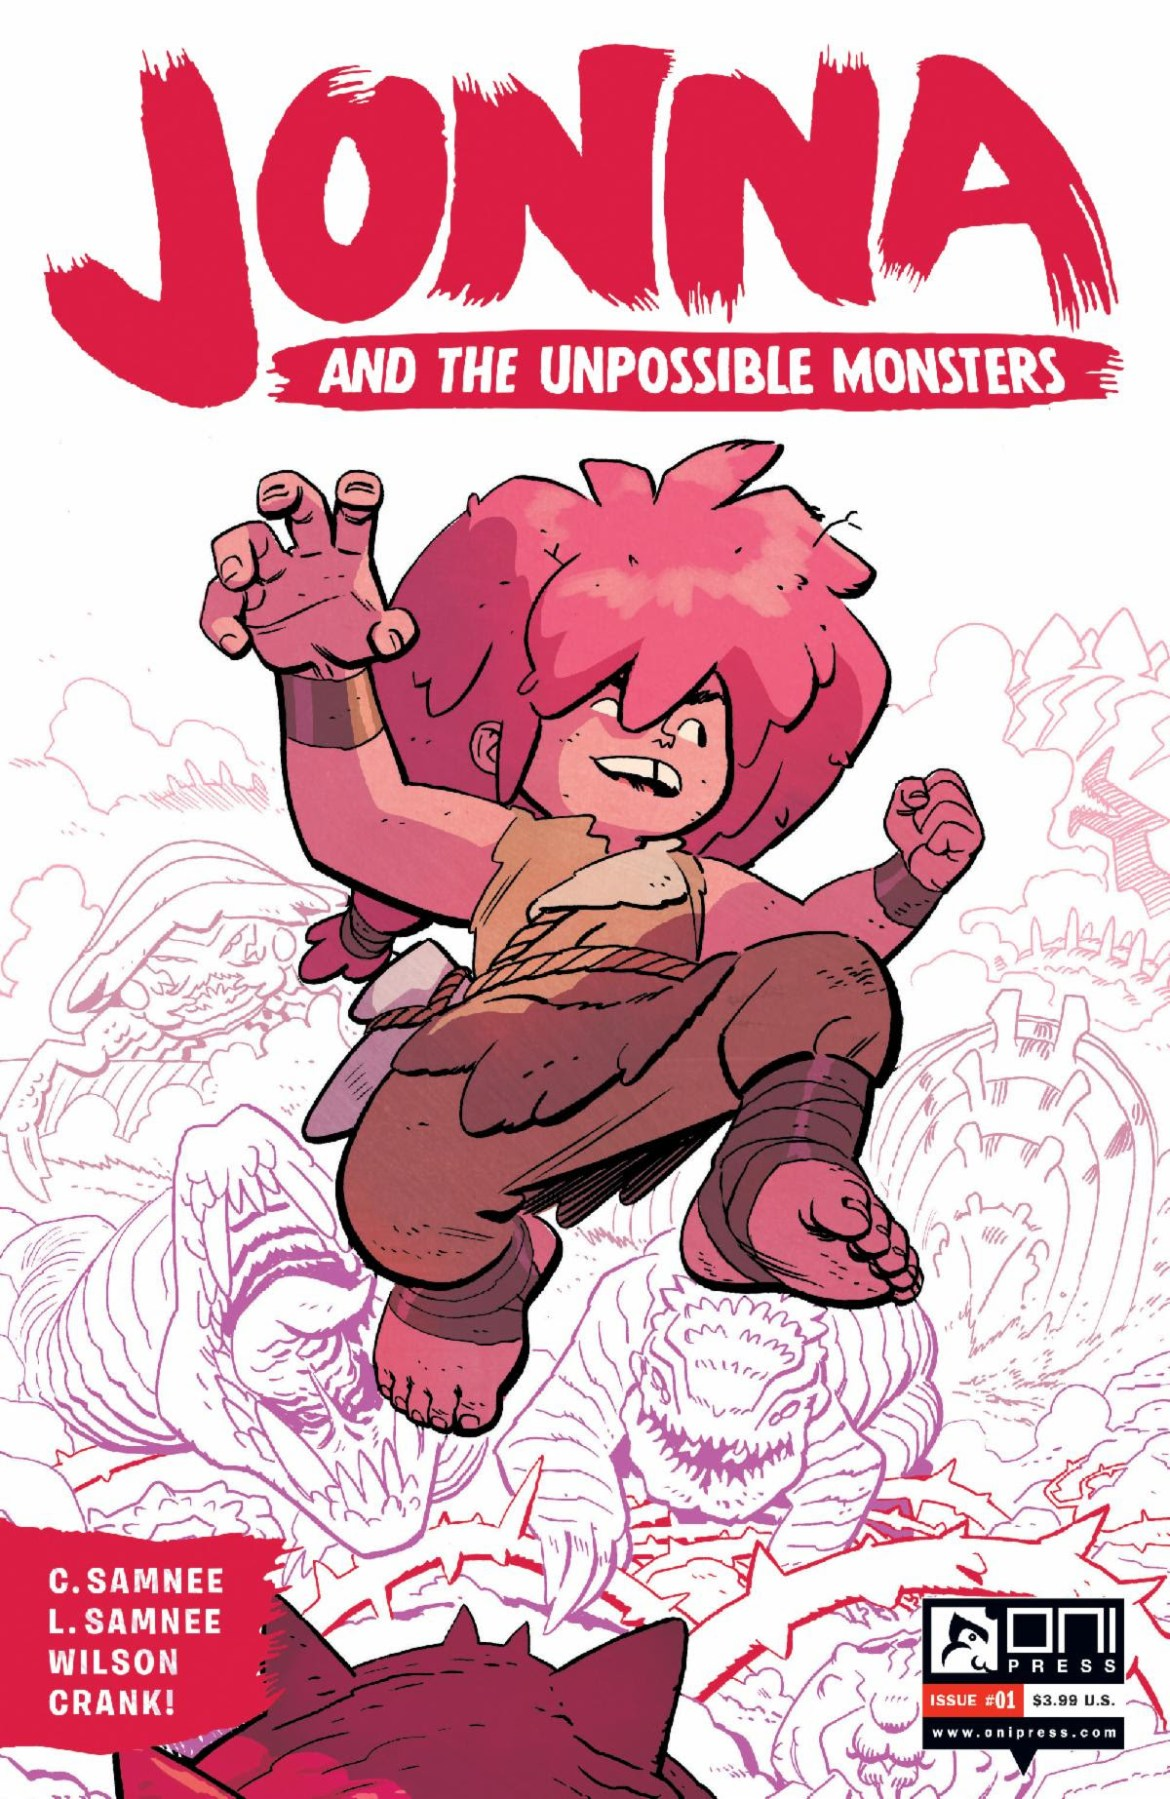 jonna_2nd JONNA AND THE UNPOSSIBLE MONSTERS #1 returns with 2nd printing